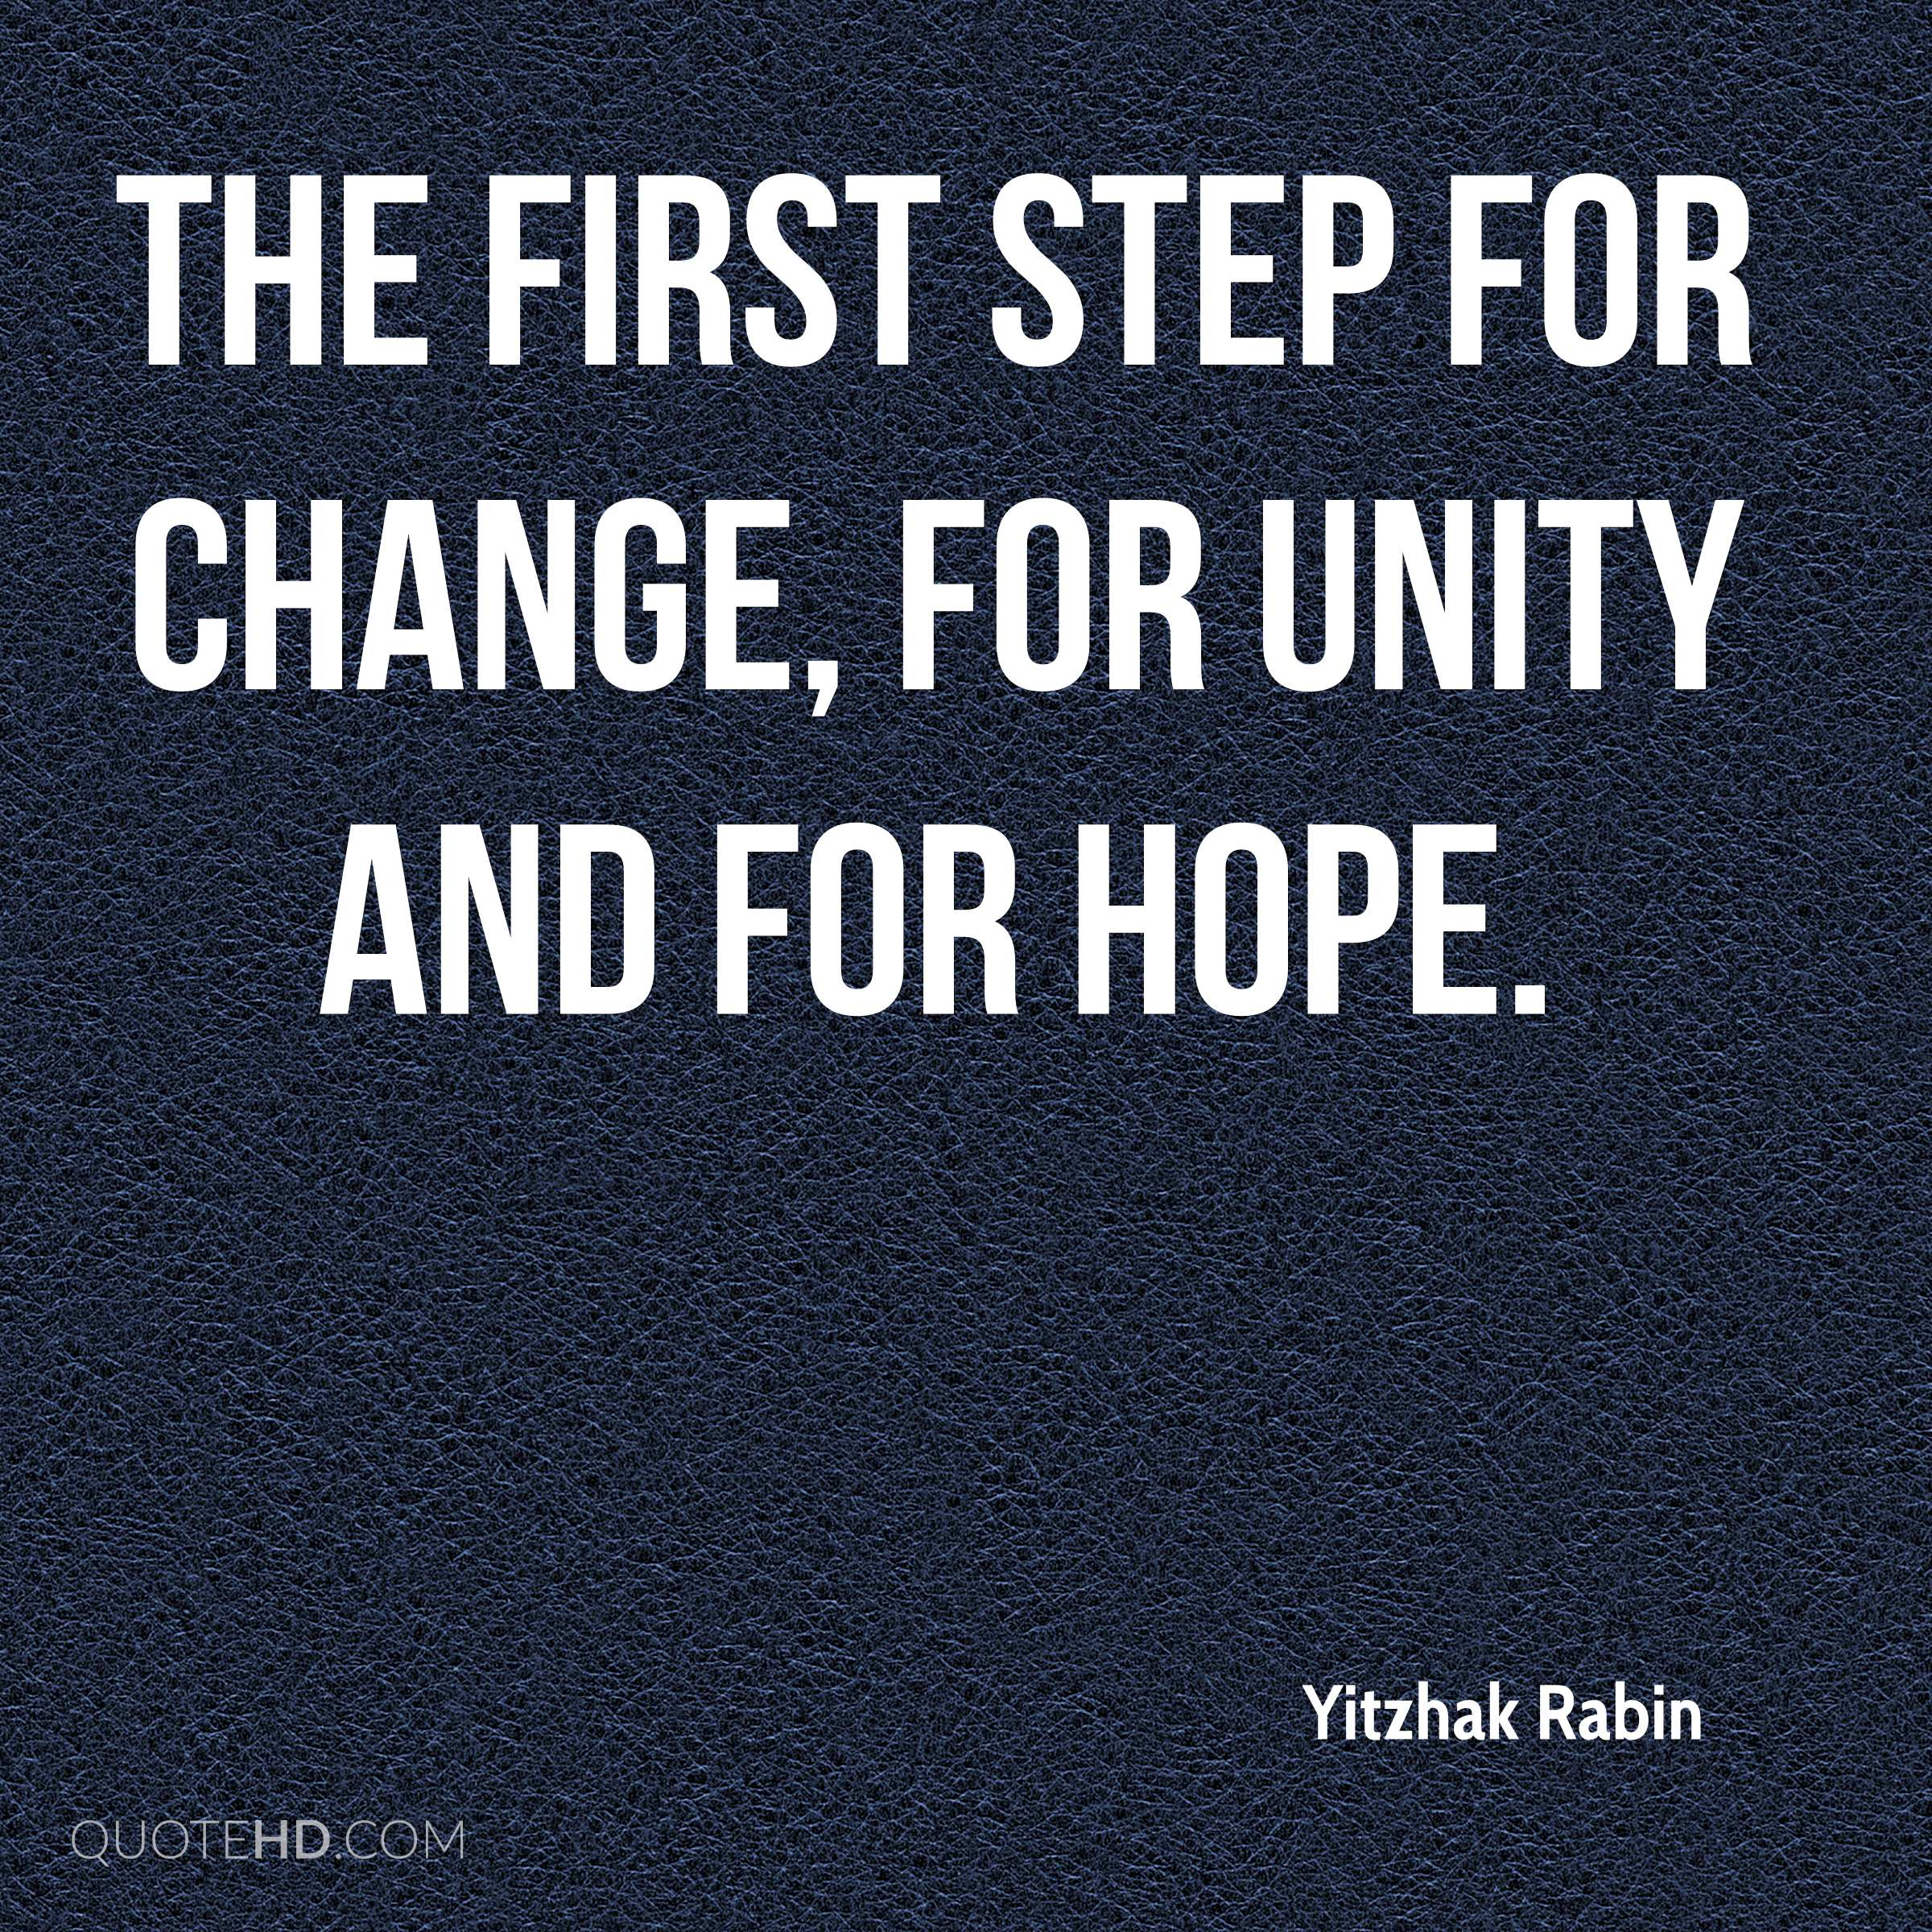 the first step for change, for unity and for hope.